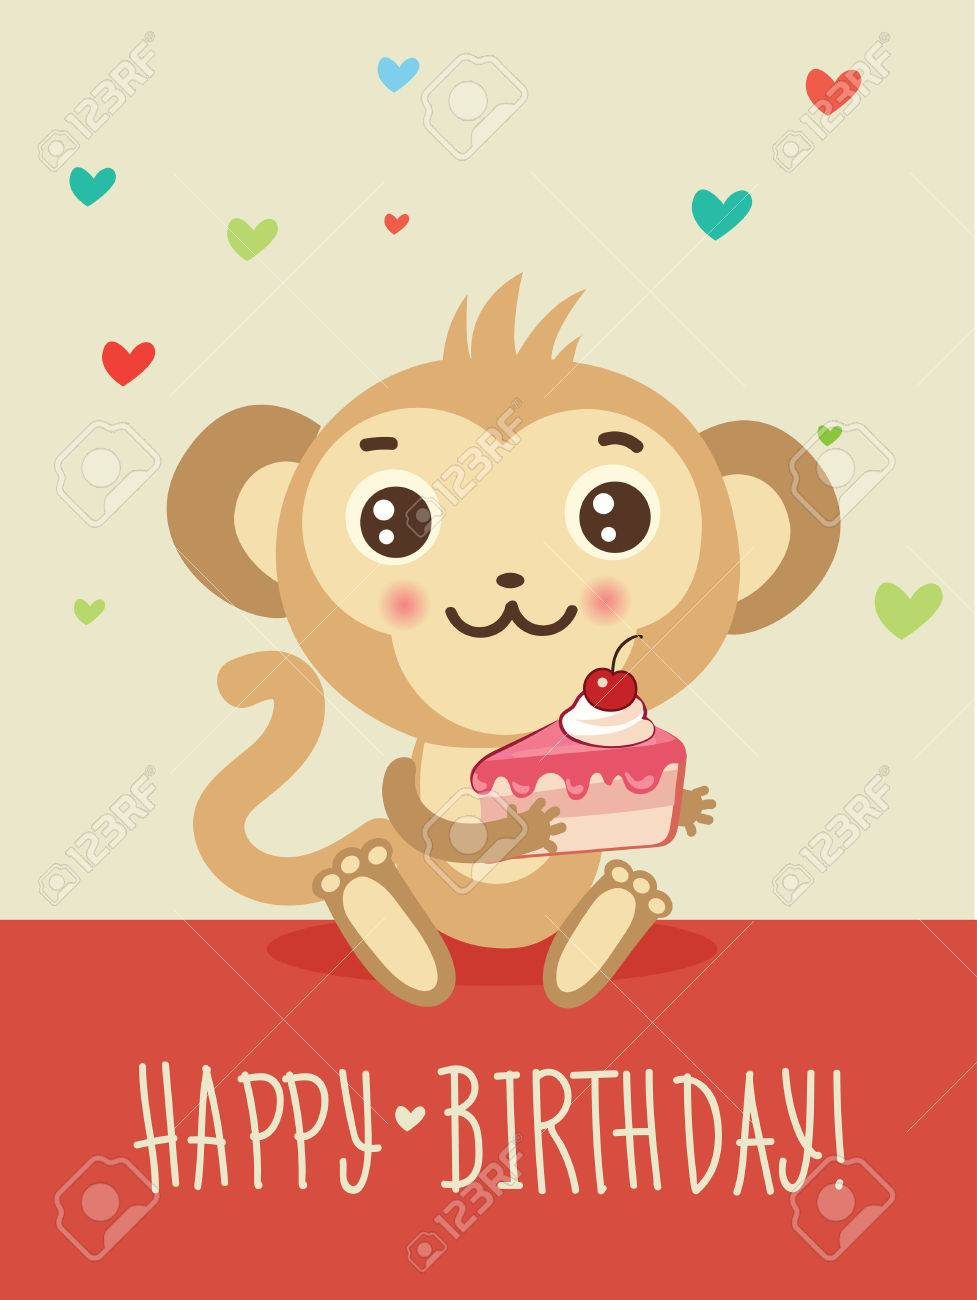 Happy Birthday Card With Funny Monkey And Cake In His Hands Cute Cartoon Animal Vector